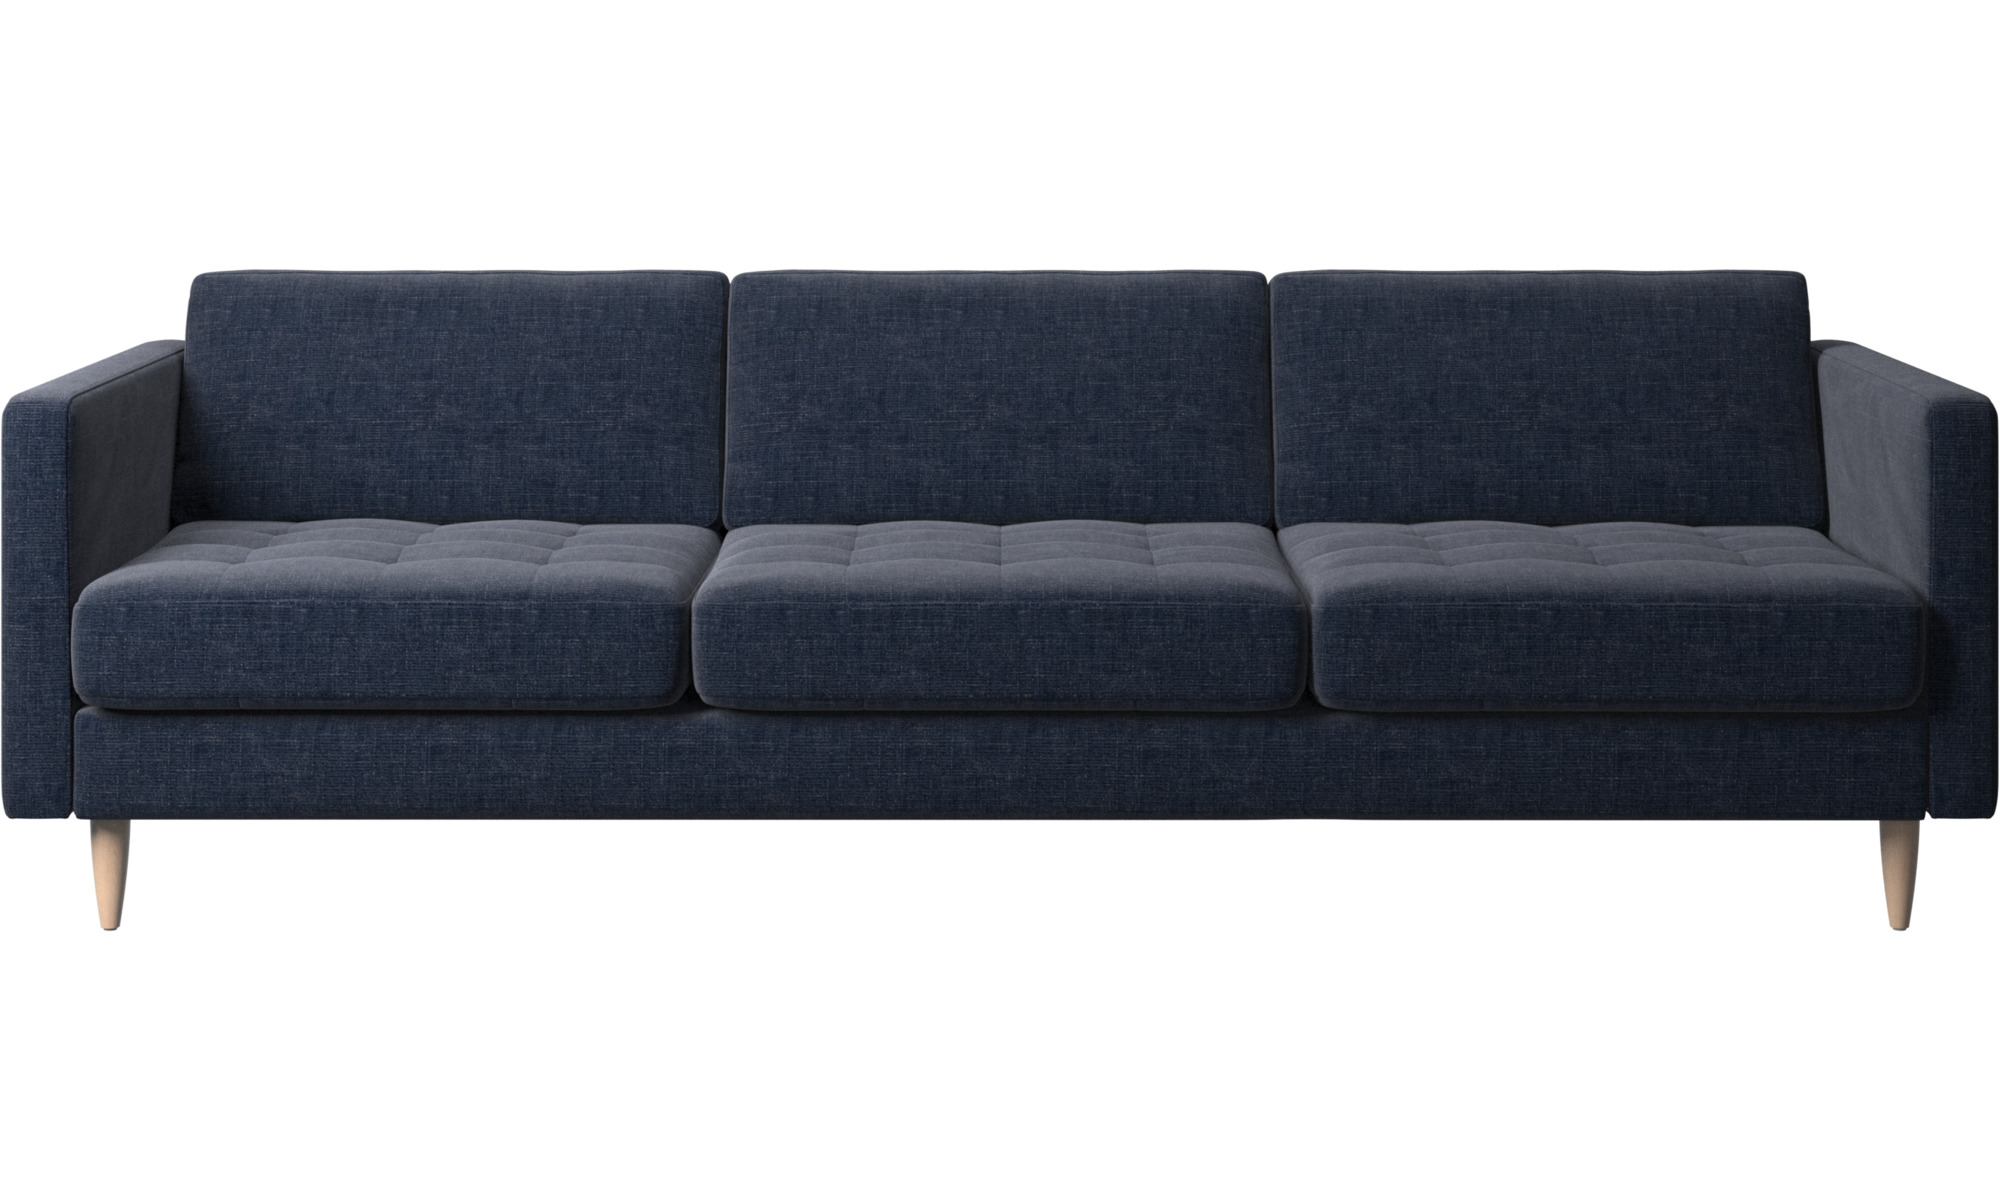 3 seater sofas osaka sofa tufted seat boconcept for Sofa 7 seater